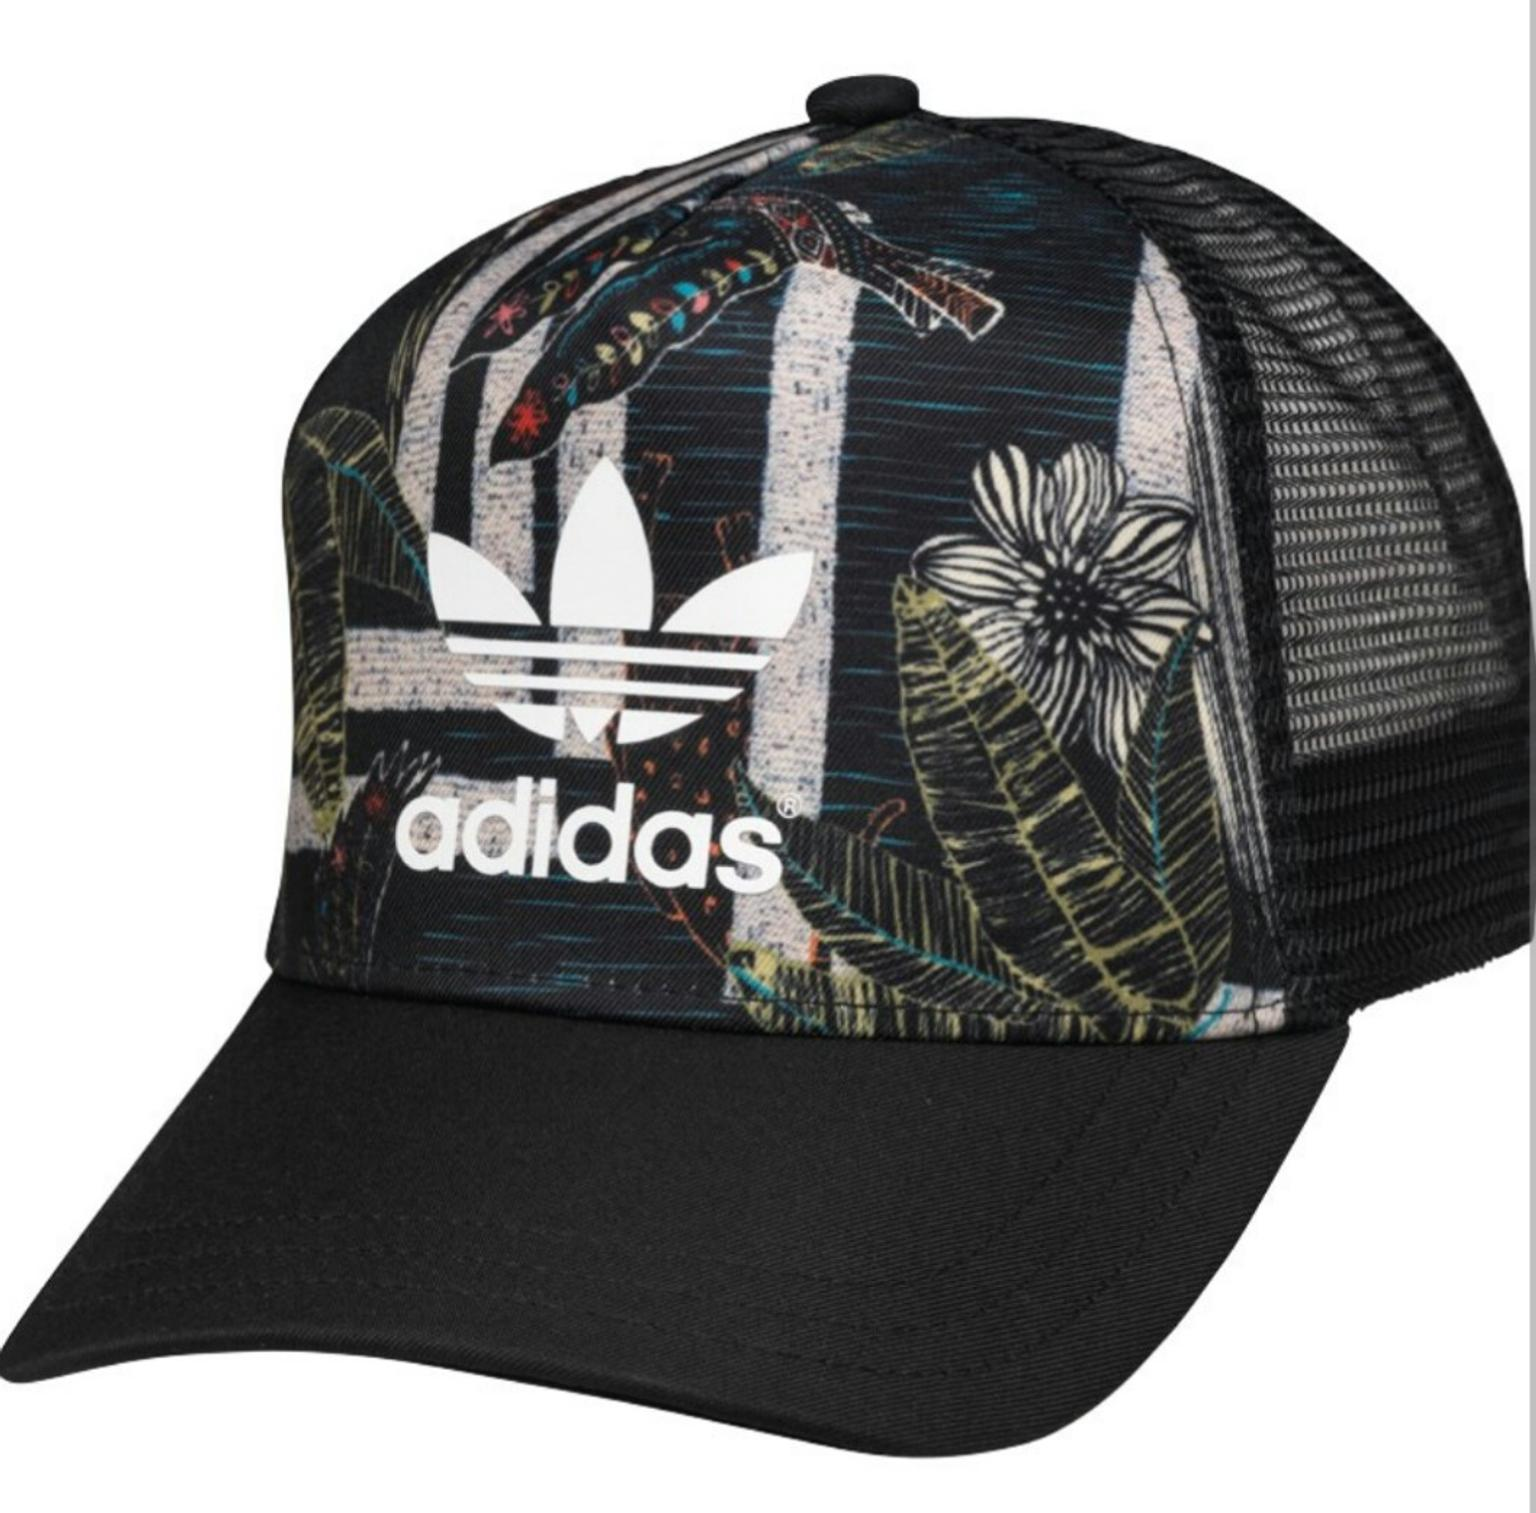 Adidas originals trucker cap in OX1 Oxford for £20 - Shpock 1a91b29357a